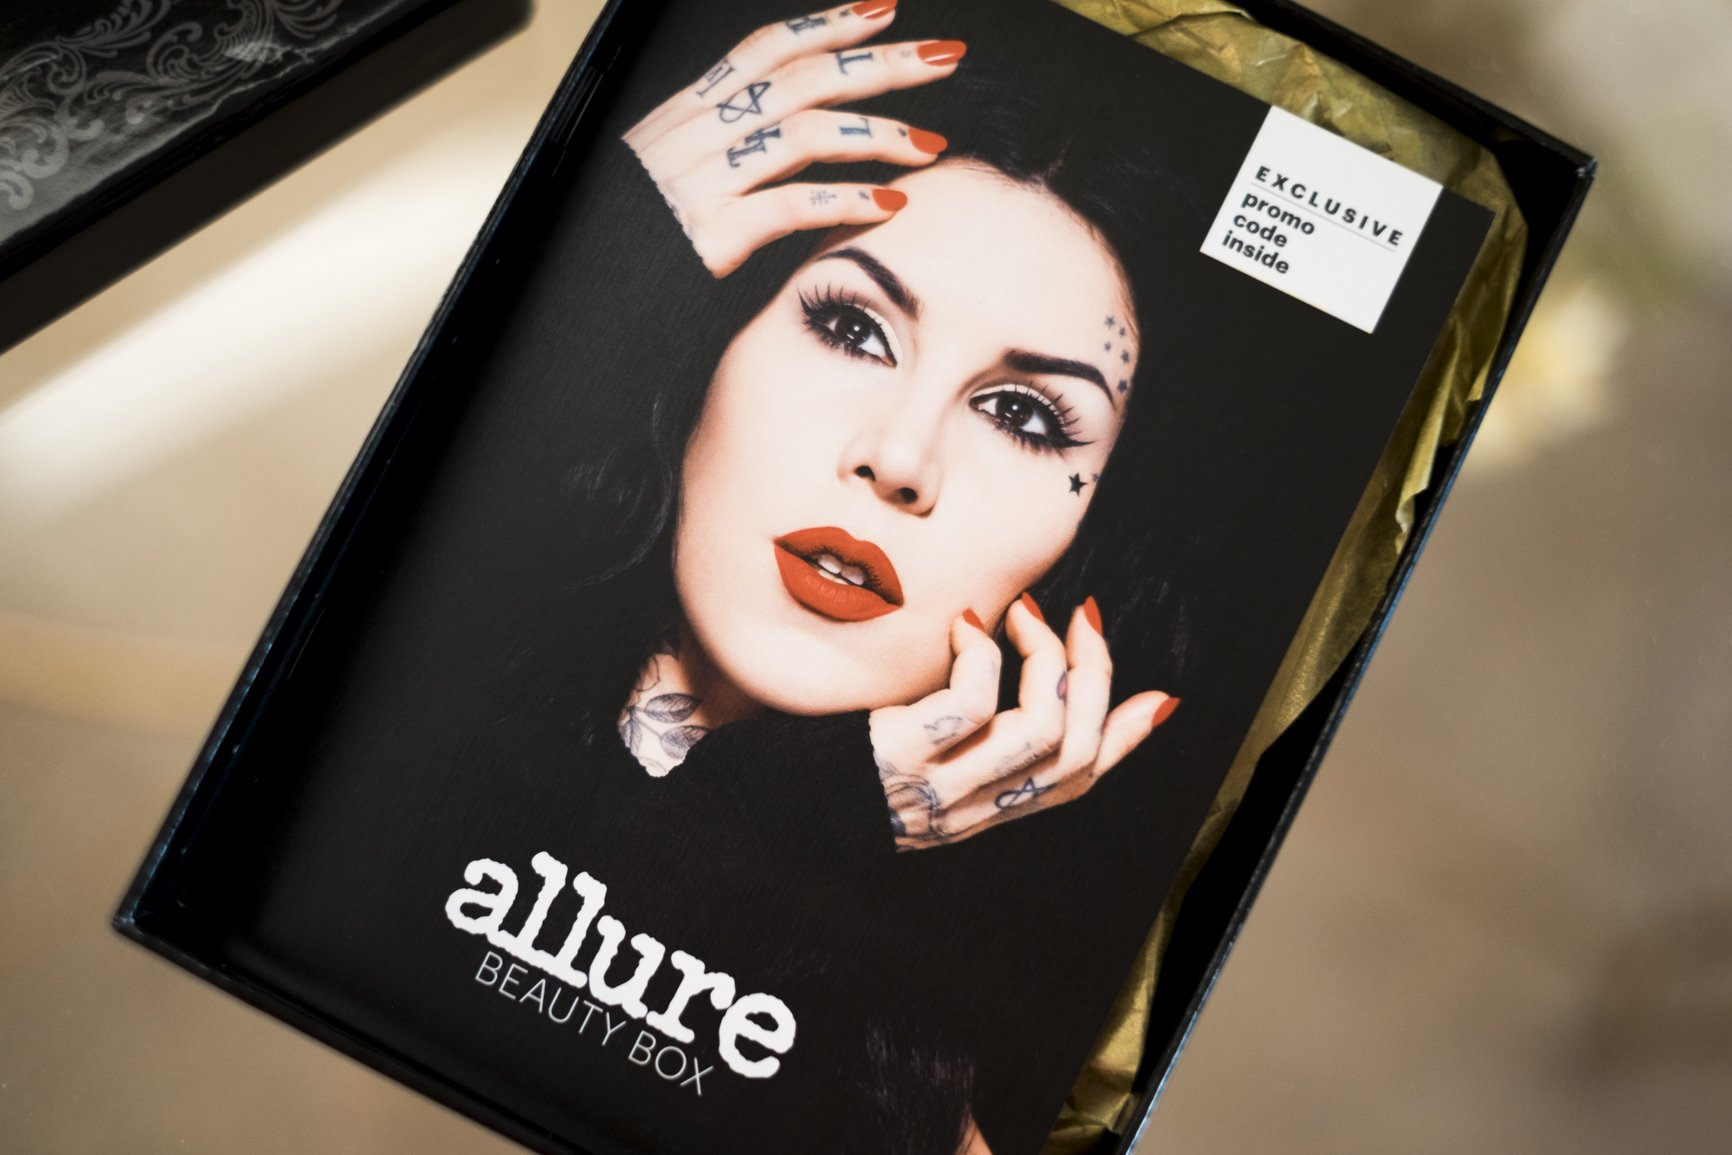 sunkissedblush-katvond-allure-box (2 of 2)